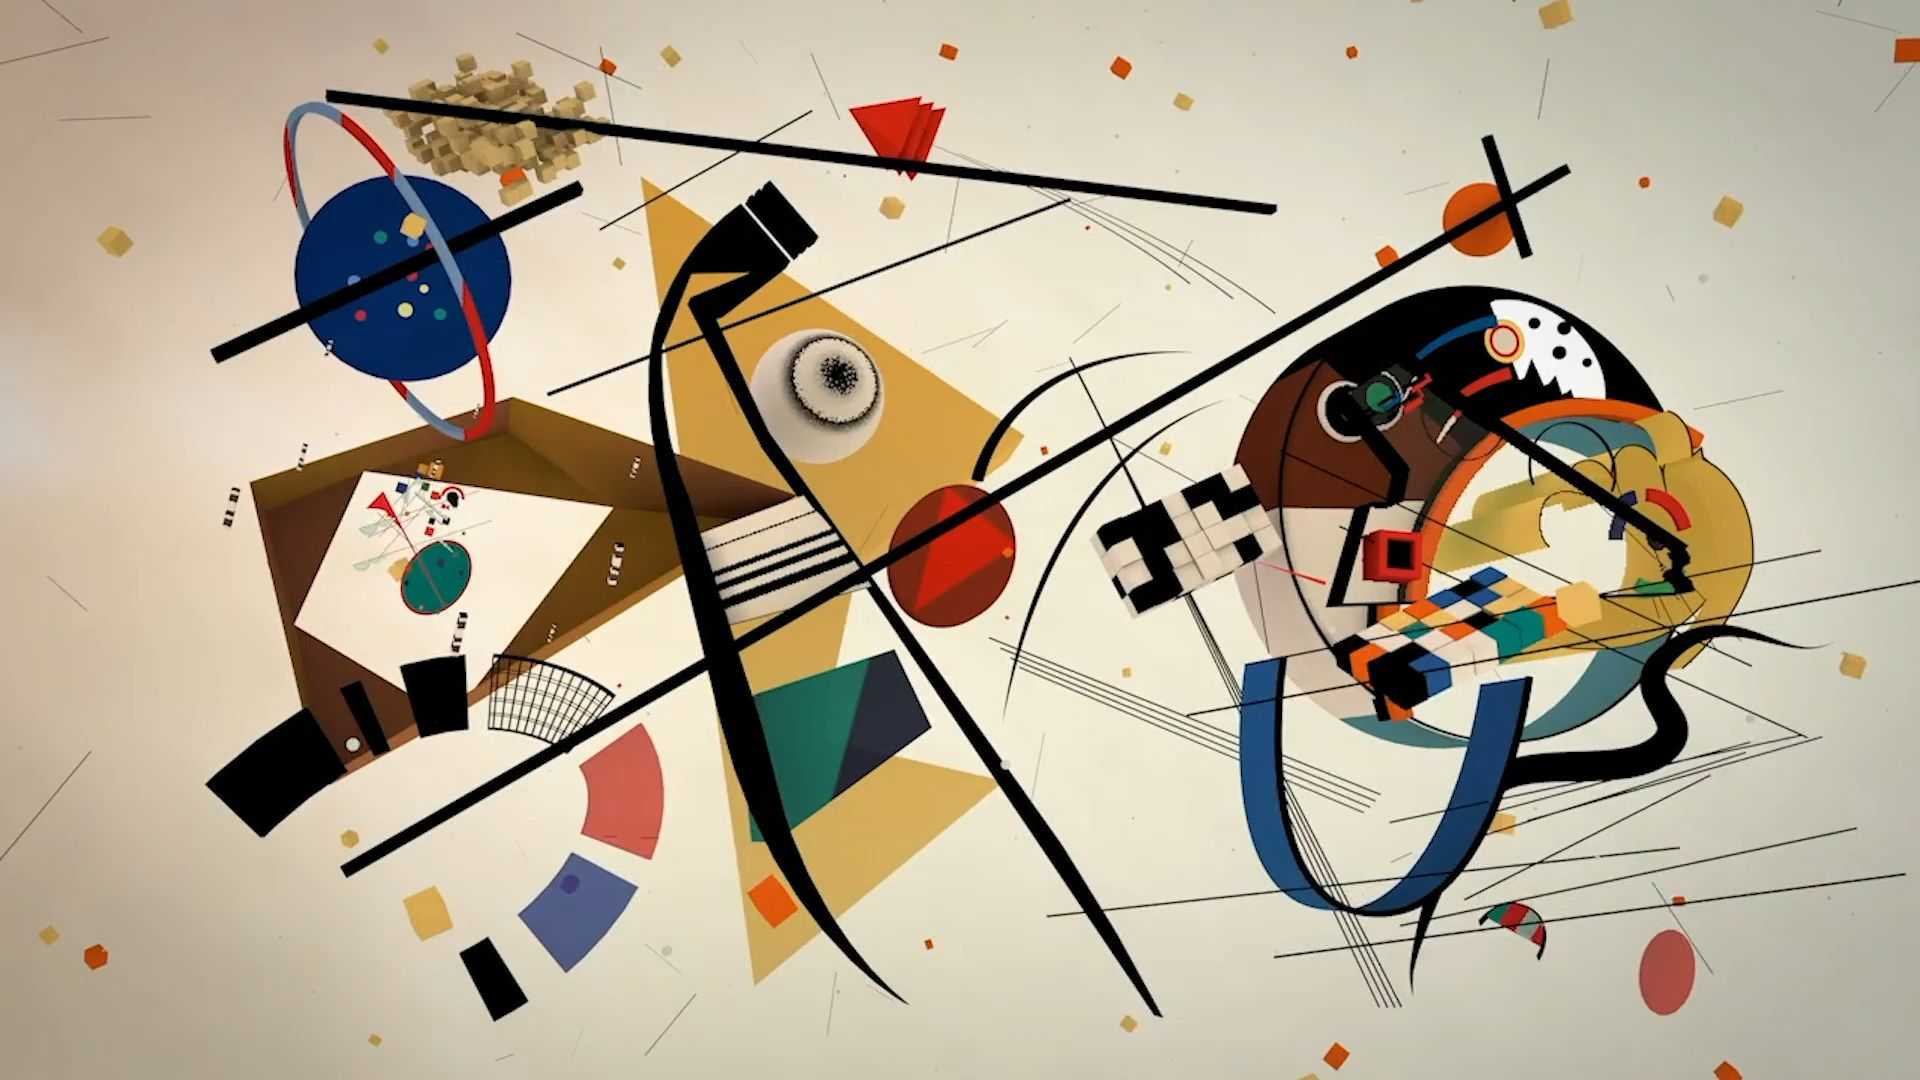 Wassily Kandinsky, the Master of abstraction, is believed to have had synaesthesia, a harmless condition that allows a person to appreciate sounds, colours or words with two or more senses simultaneously. 🎂🎉❤️ Happy Birthday Wassily Kandinsky (1866-1944). #BornOnThisDay #WassilyKandinsky #artistbirthday #modernart #abstractart #abstract #musiclover #kandinsky